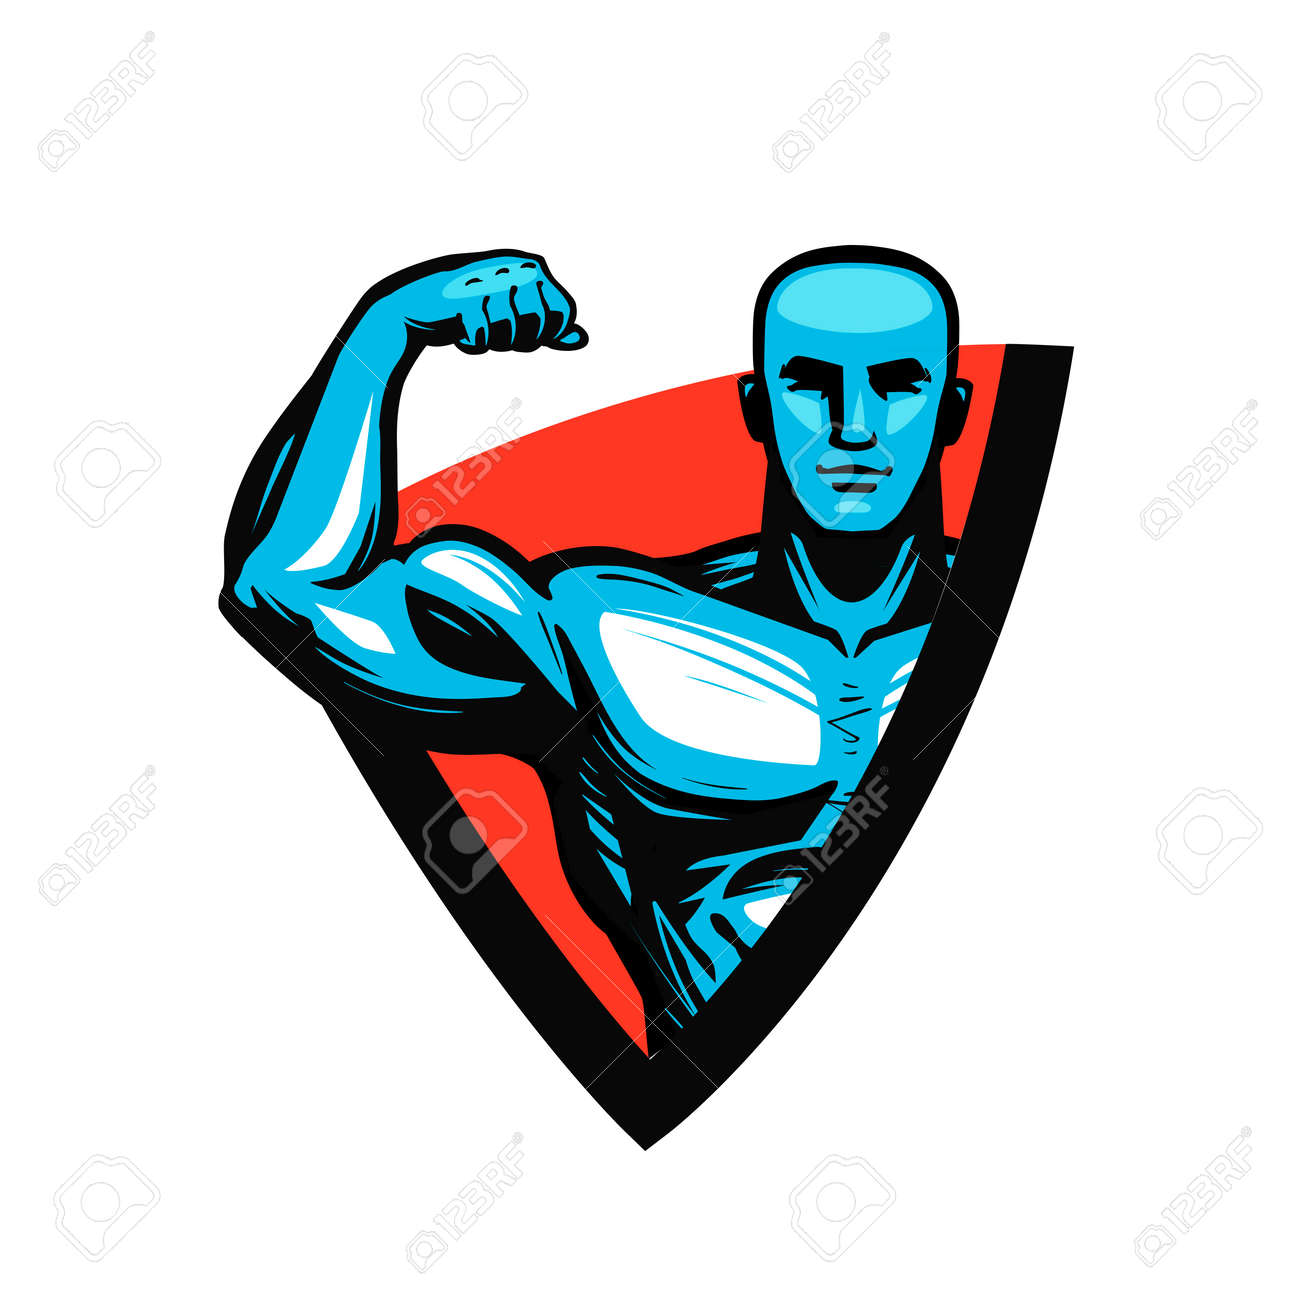 Gym, bodybuilding, fitness icon or label. Muscle male or bodybuilder. Vector illustration. - 98770749